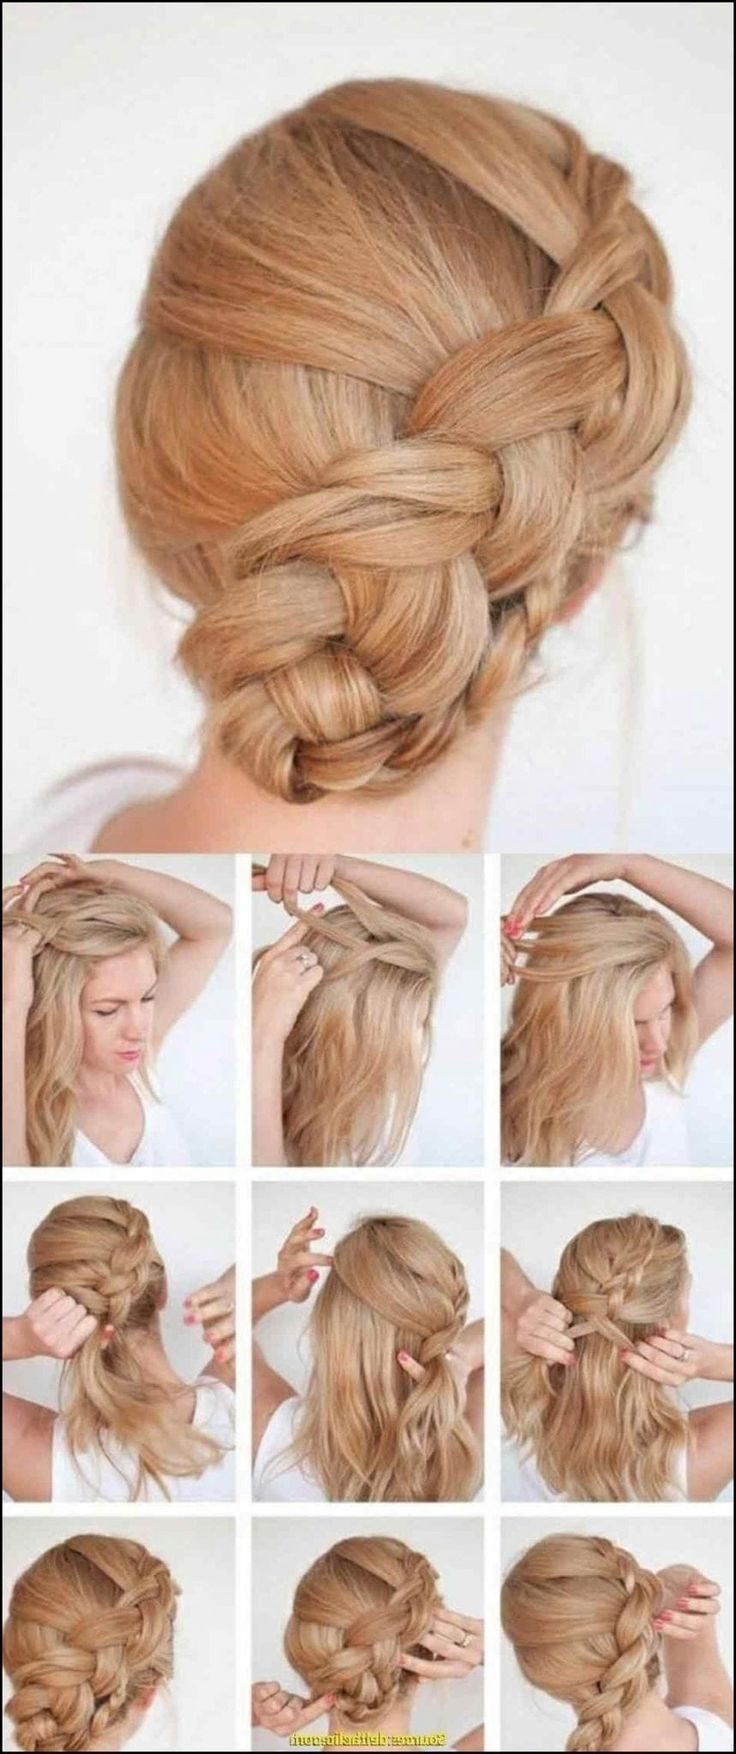 9+ simple hairstyles for long hair - top fashionable dresses in